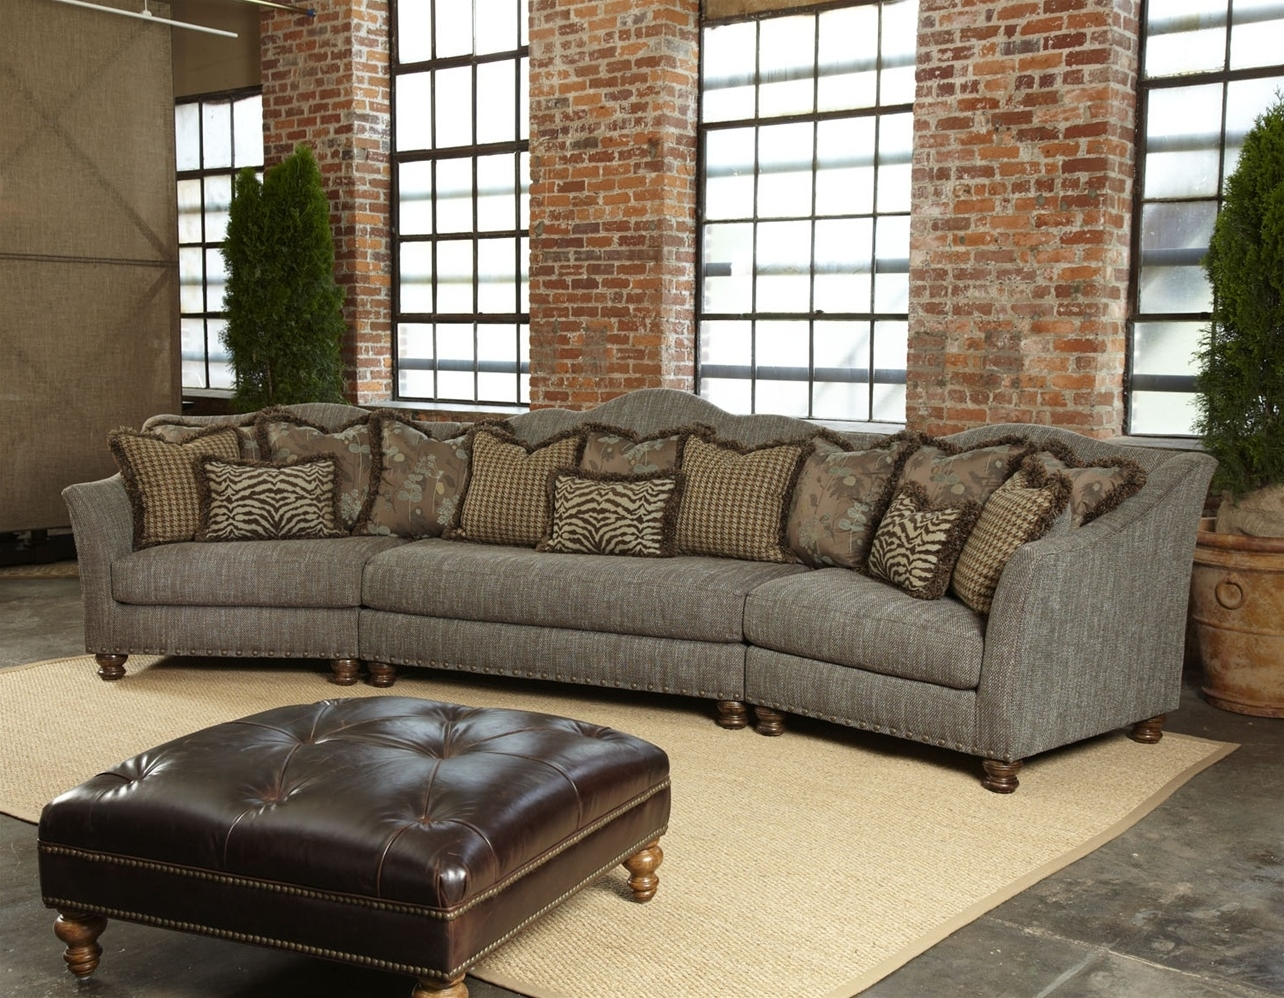 Well Liked Good Quality Sectional Sofas – Cleanupflorida Within Sectional Sofas In North Carolina (View 19 of 20)